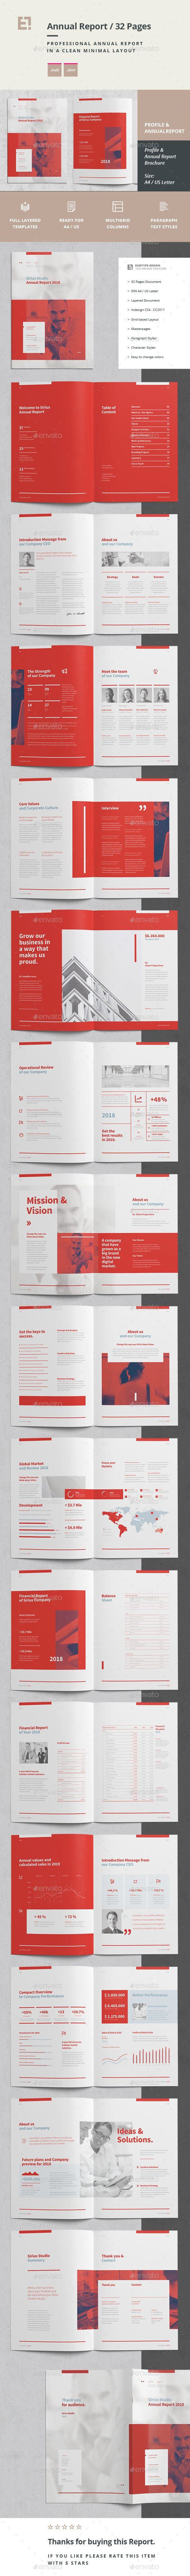 Annual Report — InDesign INDD #proposal #modern • Download ➝ https://graphicriver.net/item/annual-report/21456410?ref=pxcr